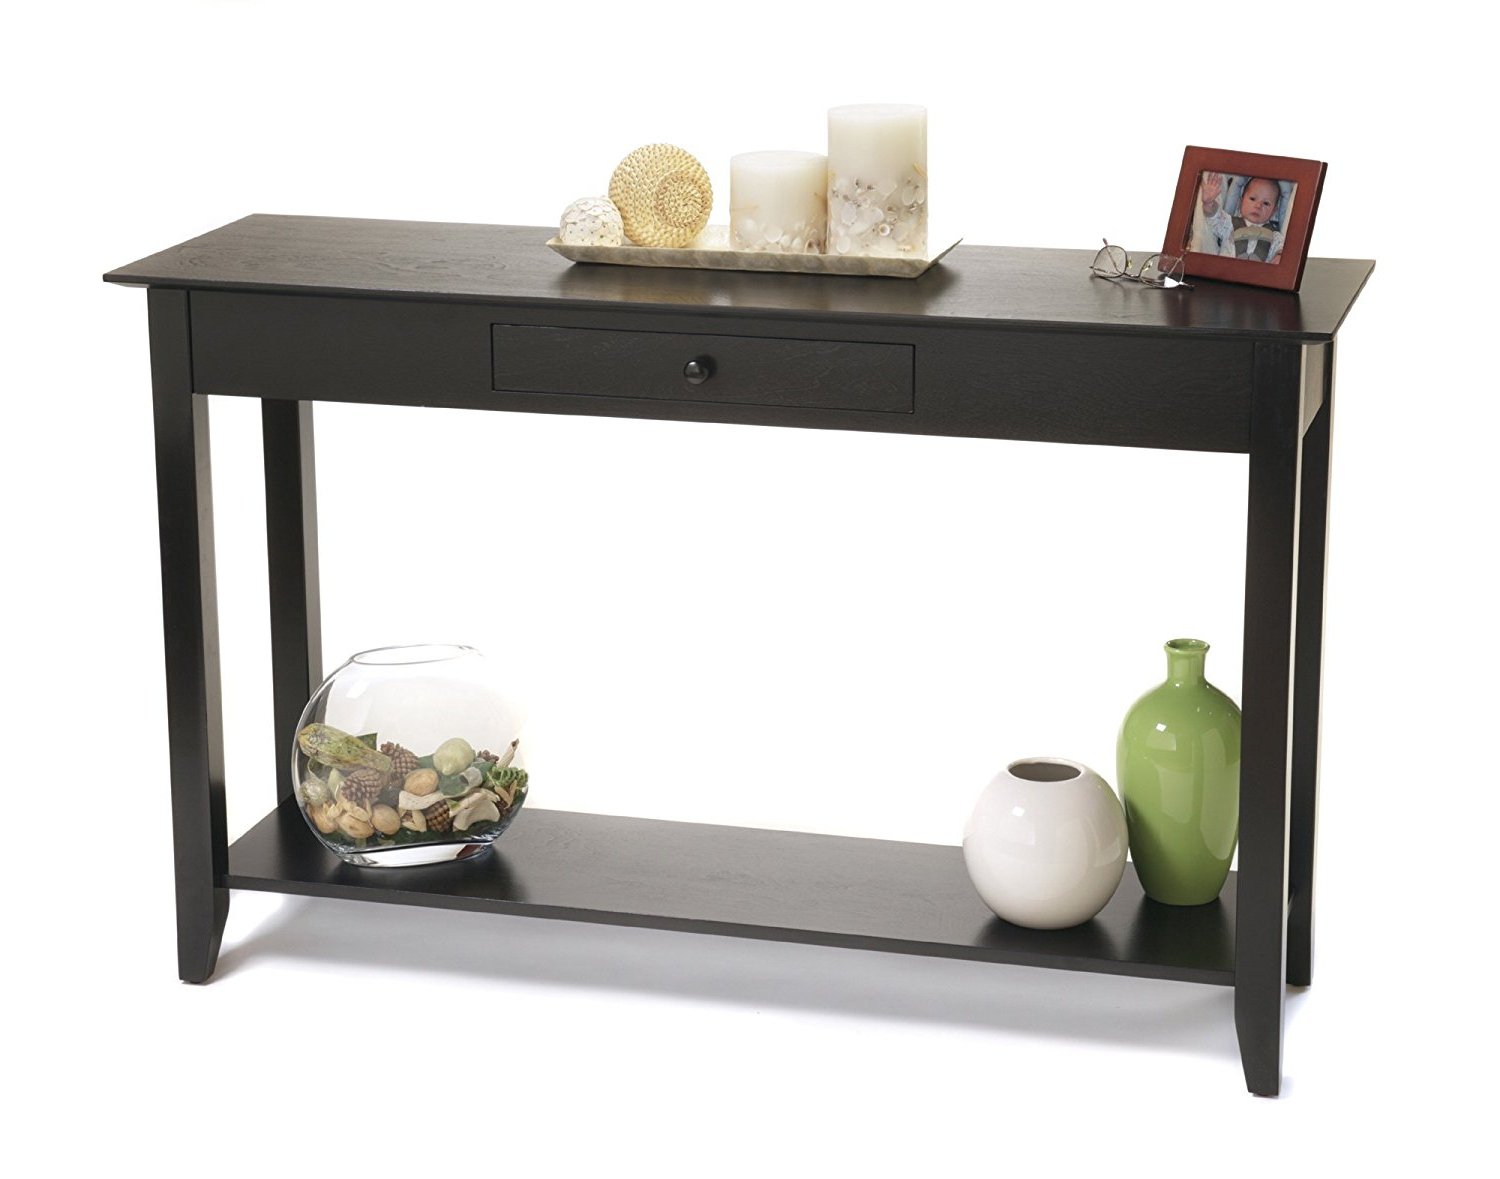 Sofa Table: Amusing Black Sofa Table Ikea Ideas Ikea White Sofa With Parsons Black Marble Top & Brass Base 48x16 Console Tables (View 12 of 20)